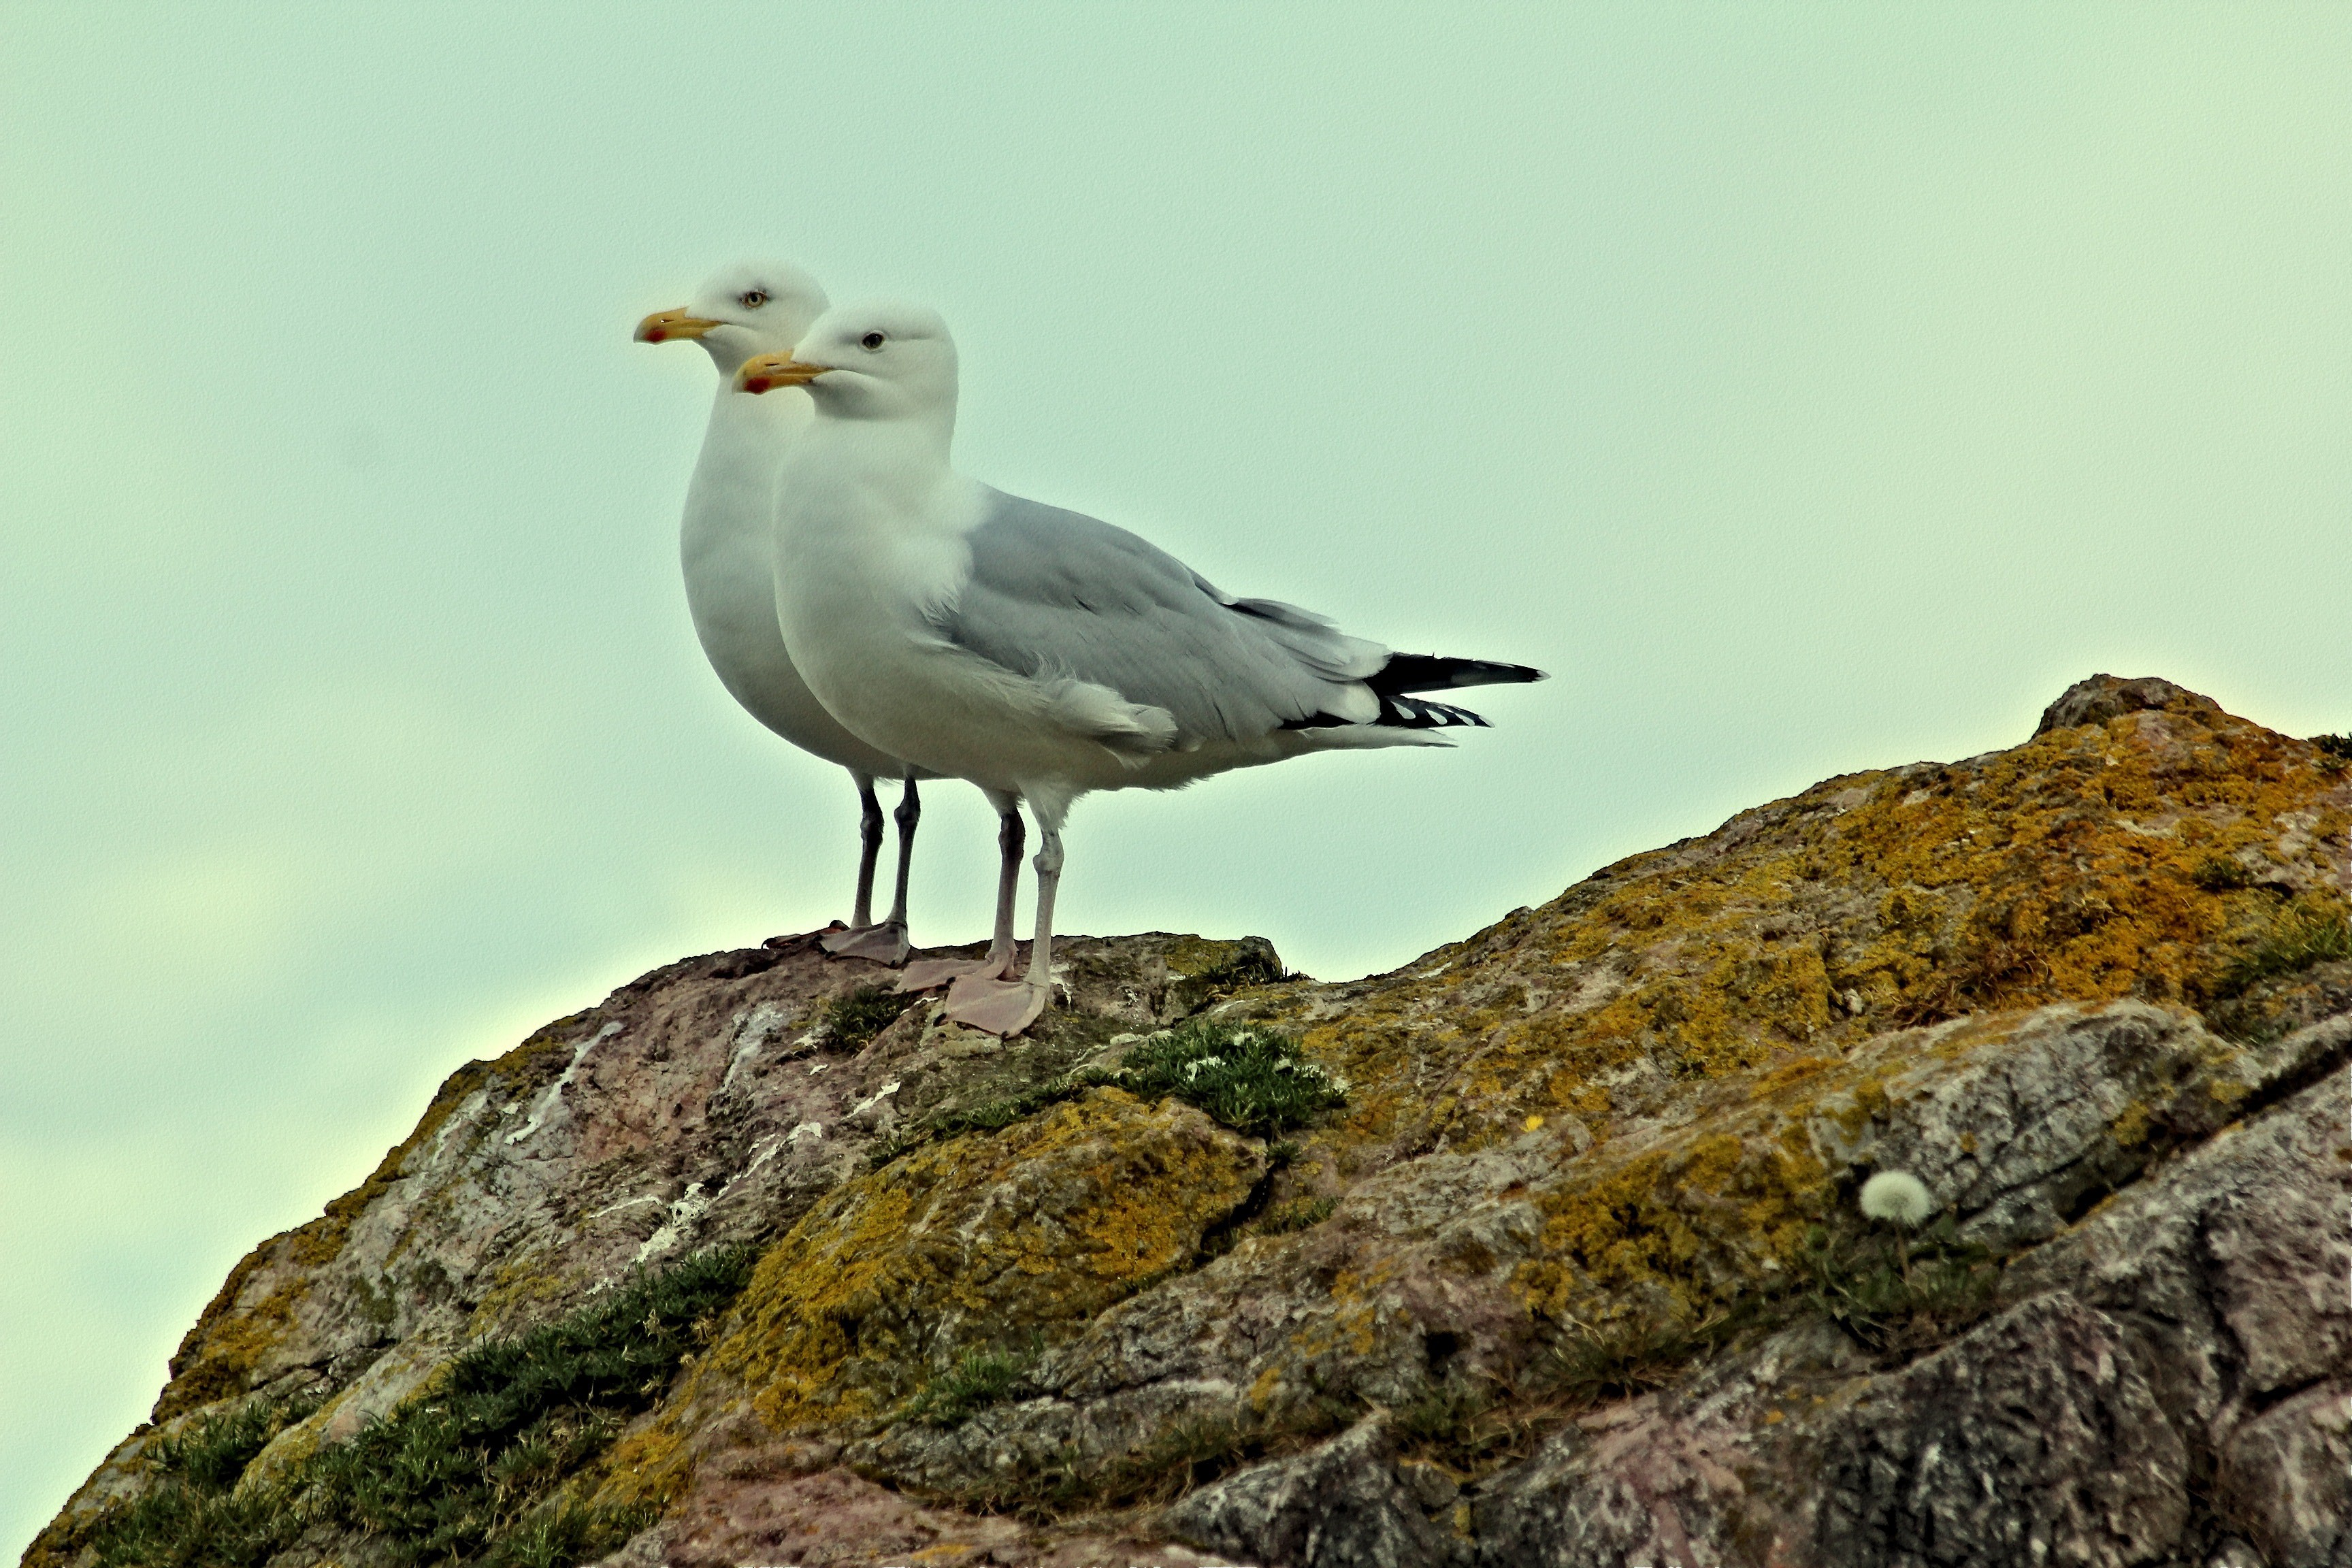 two seagulls on a beach rock, side by side, one perched a tad higher than the other